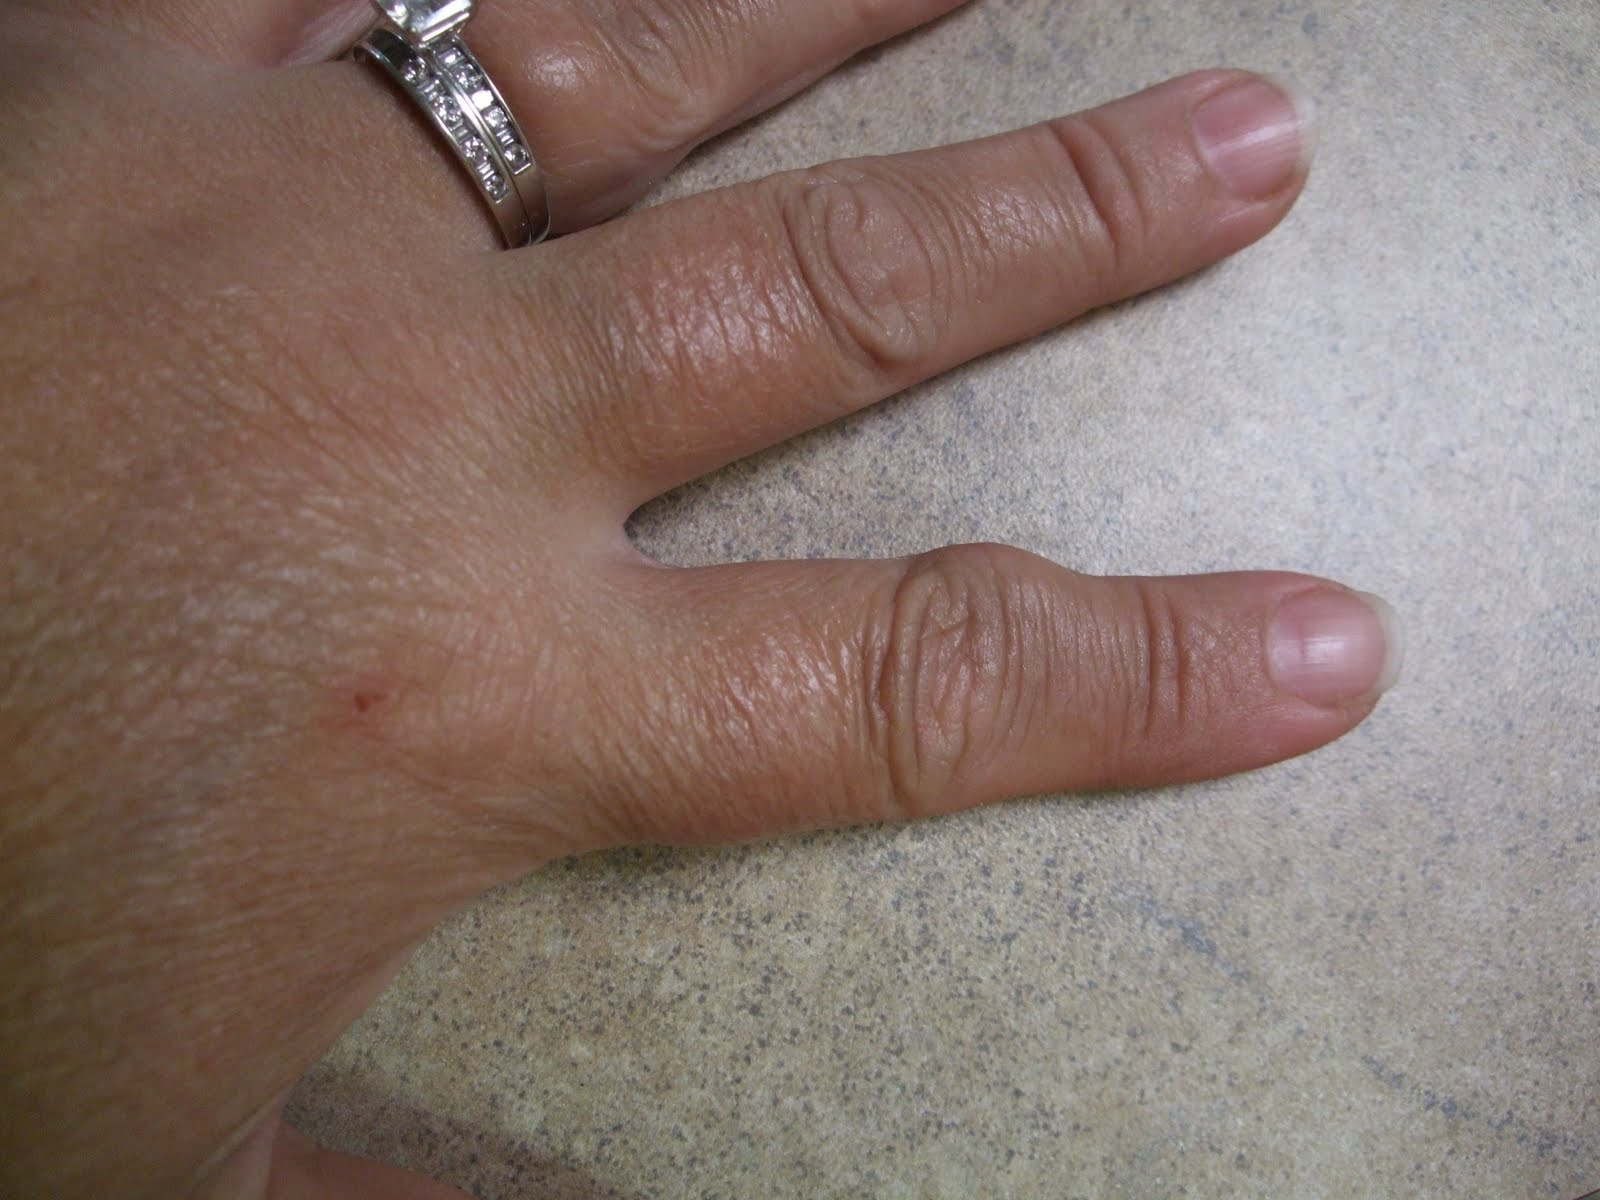 Swelling In Ring Finger Joint